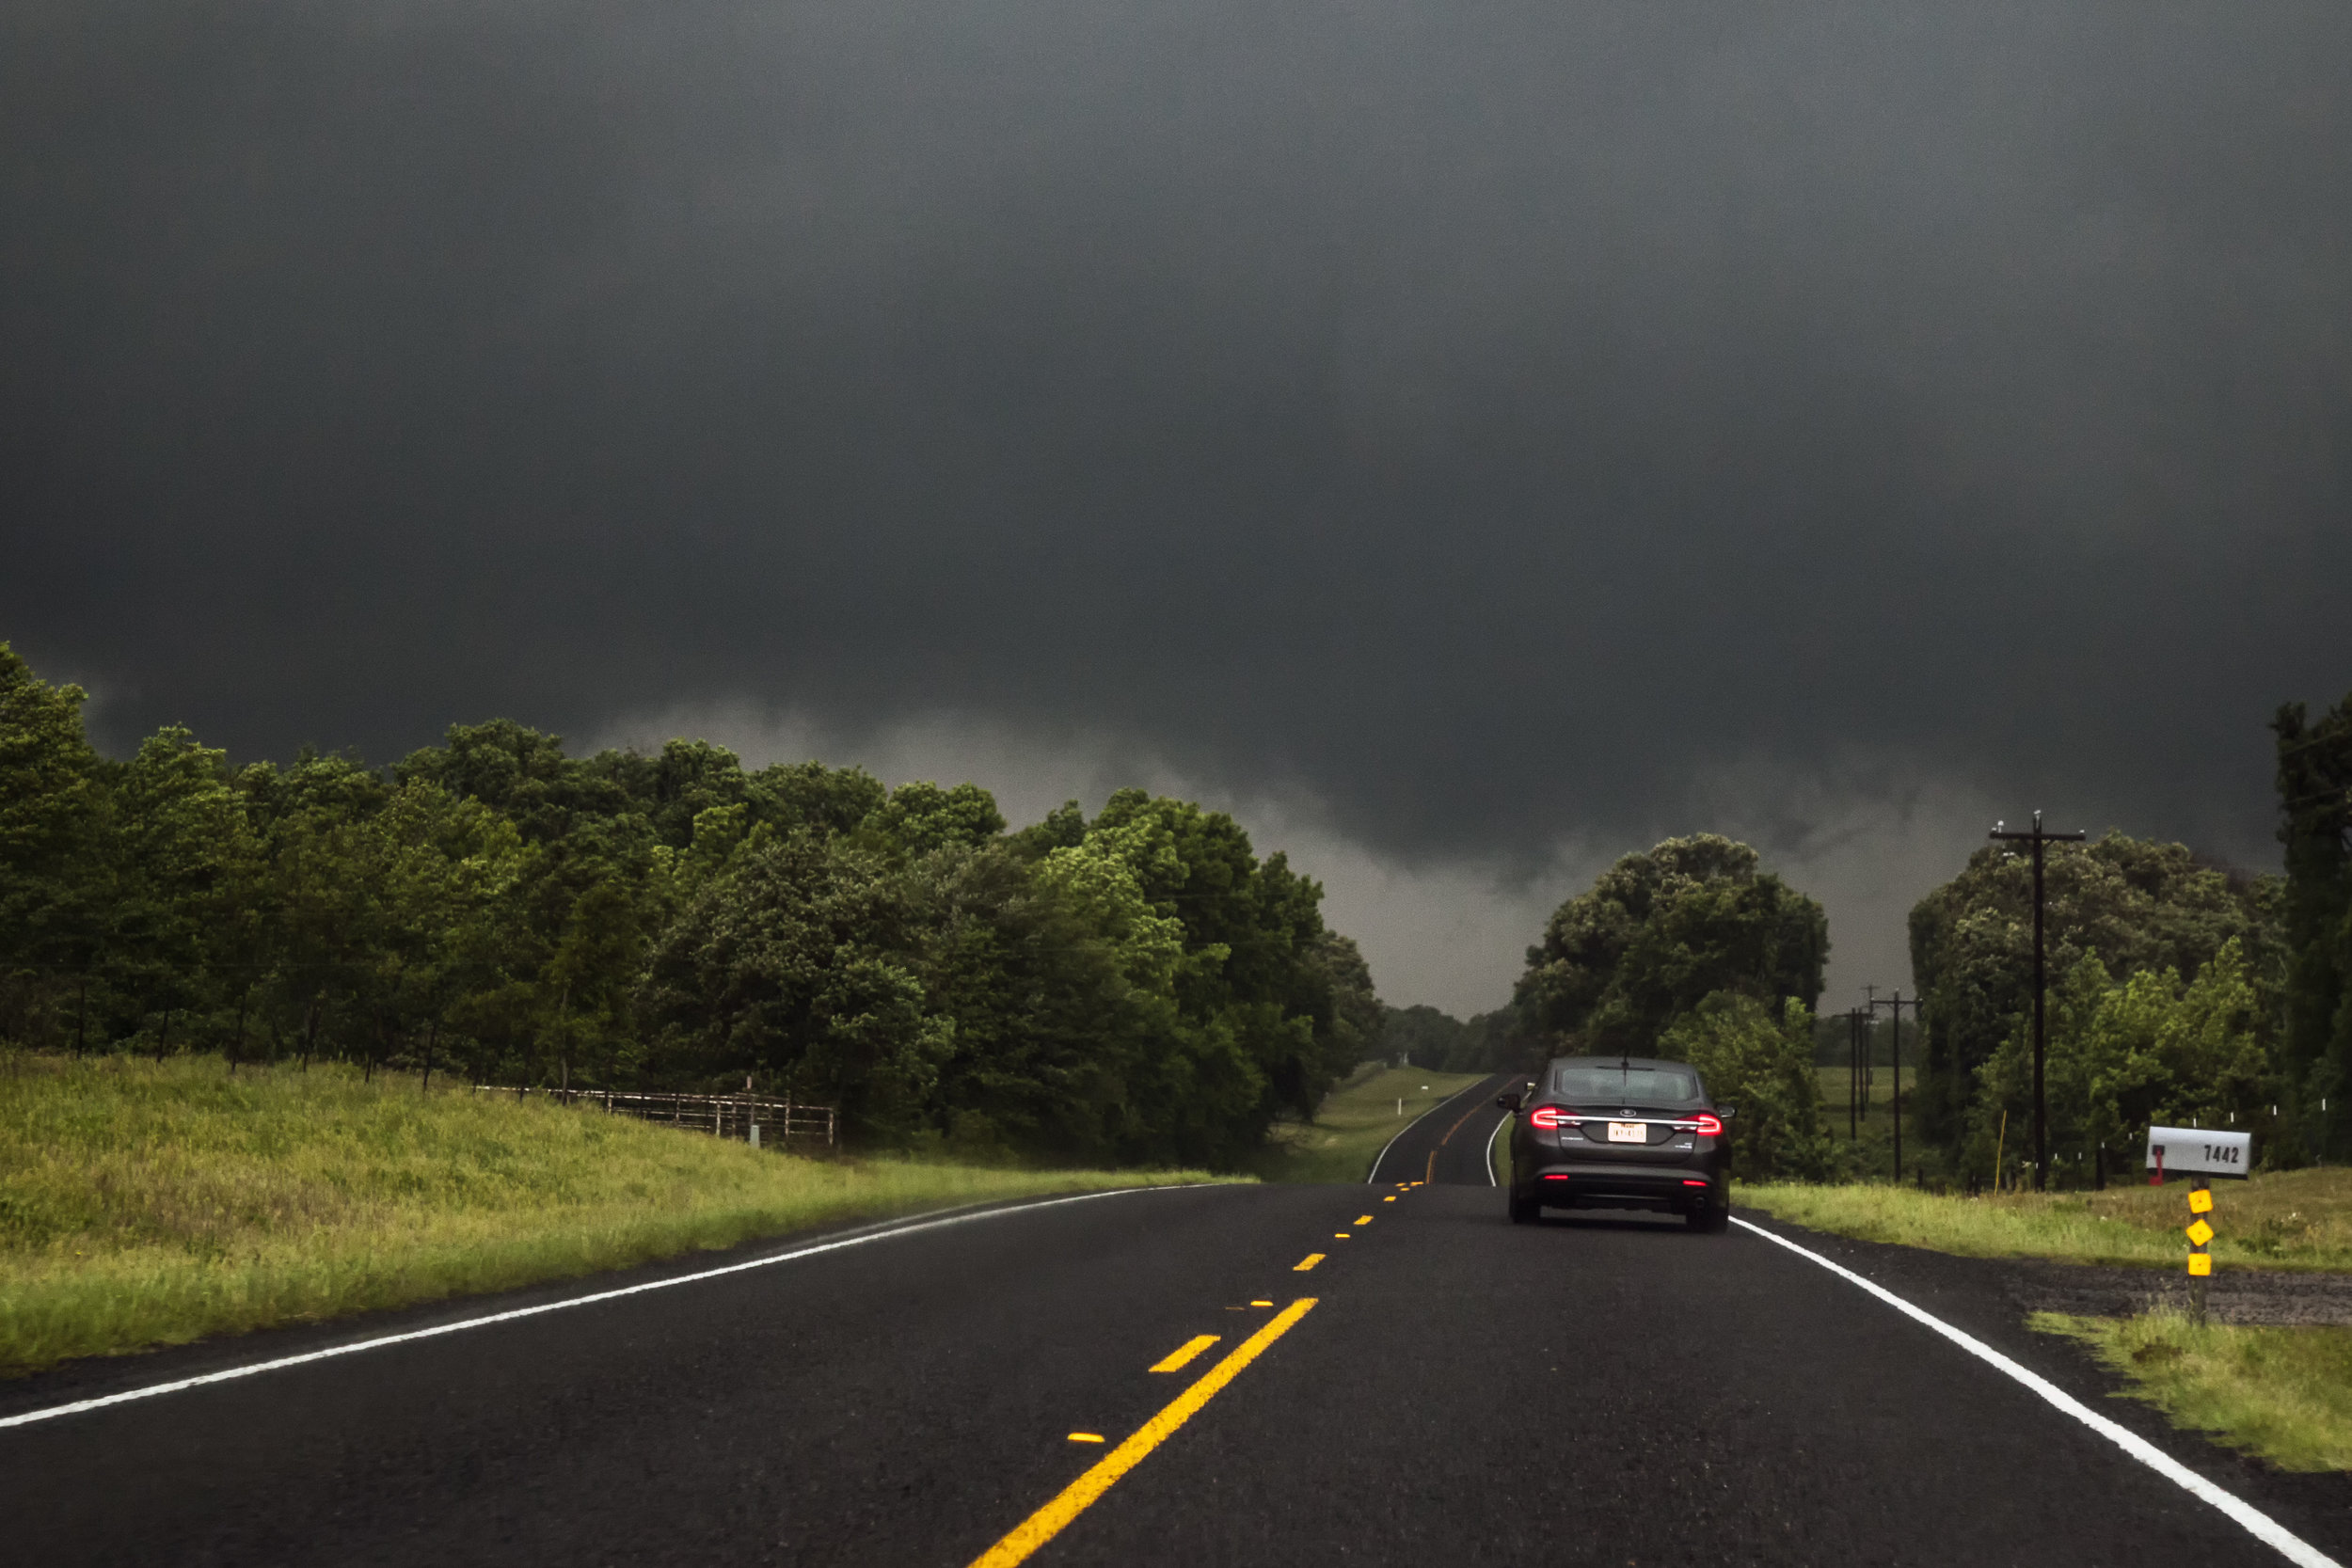 An untrained eye might not notice the violent tornado just behind the trees on the left. Chasing in East Texas is incredibly difficult due to the thick trees and plentiful hills.